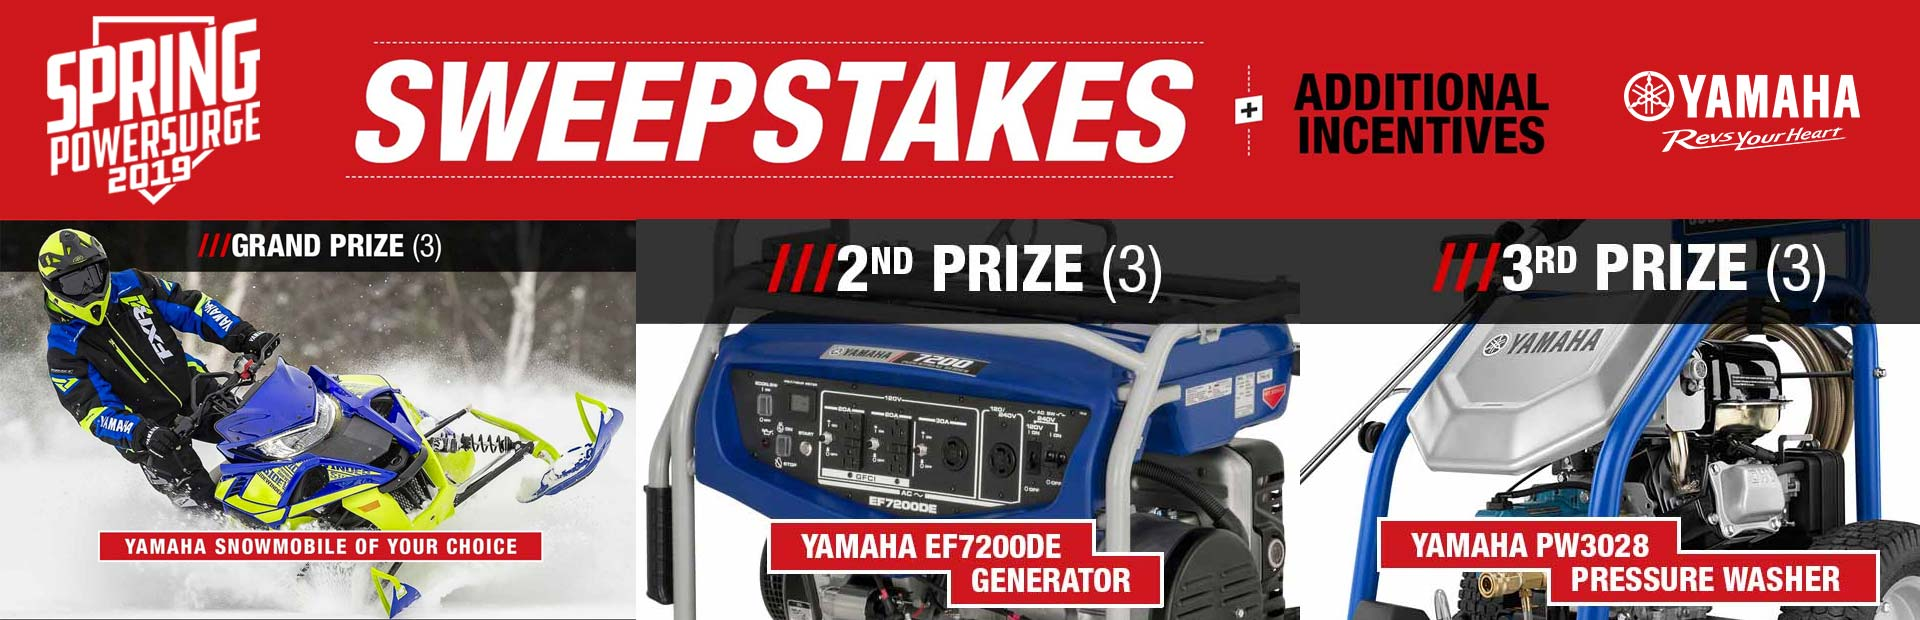 Yamaha: Spring Power Surge Sweepstakes